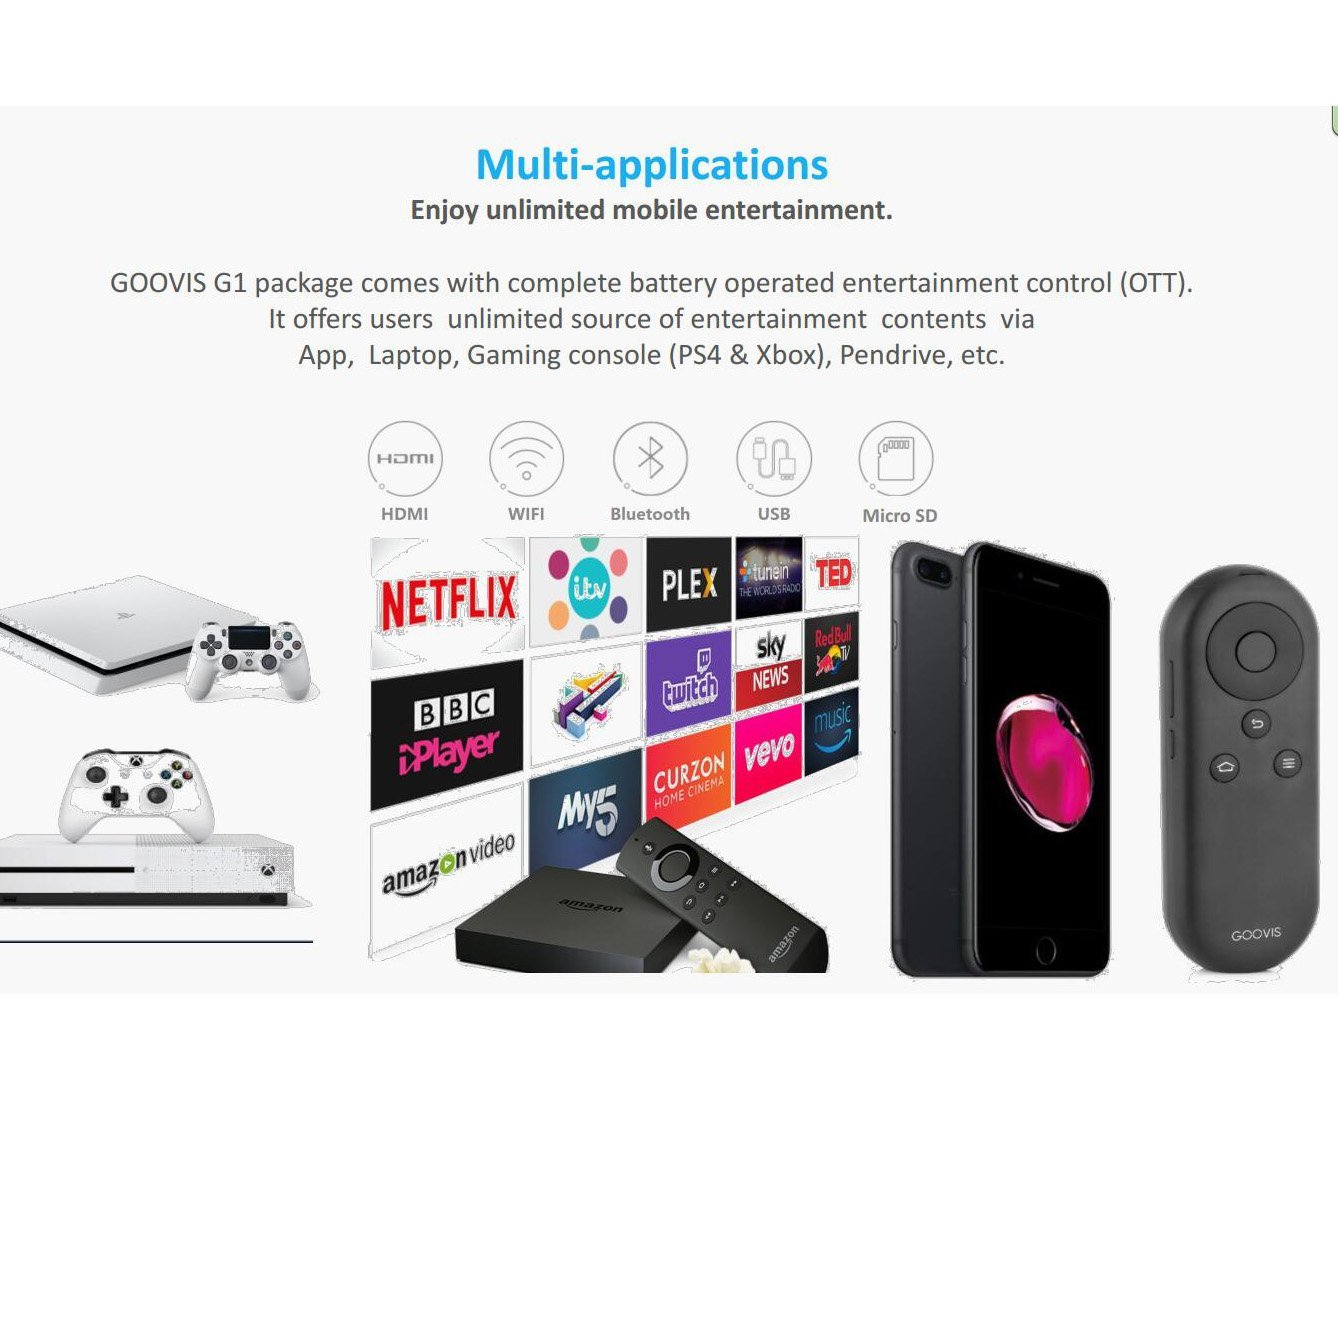 """4a1d265f68d GOOVIS Virtual Reality Travel 3D Theater VR Glasses 800"""" HD Giant Screen  Advanced HD 4K Sony OLED Micro display with Resolution 1920x1080x2 -  Walmart.com"""